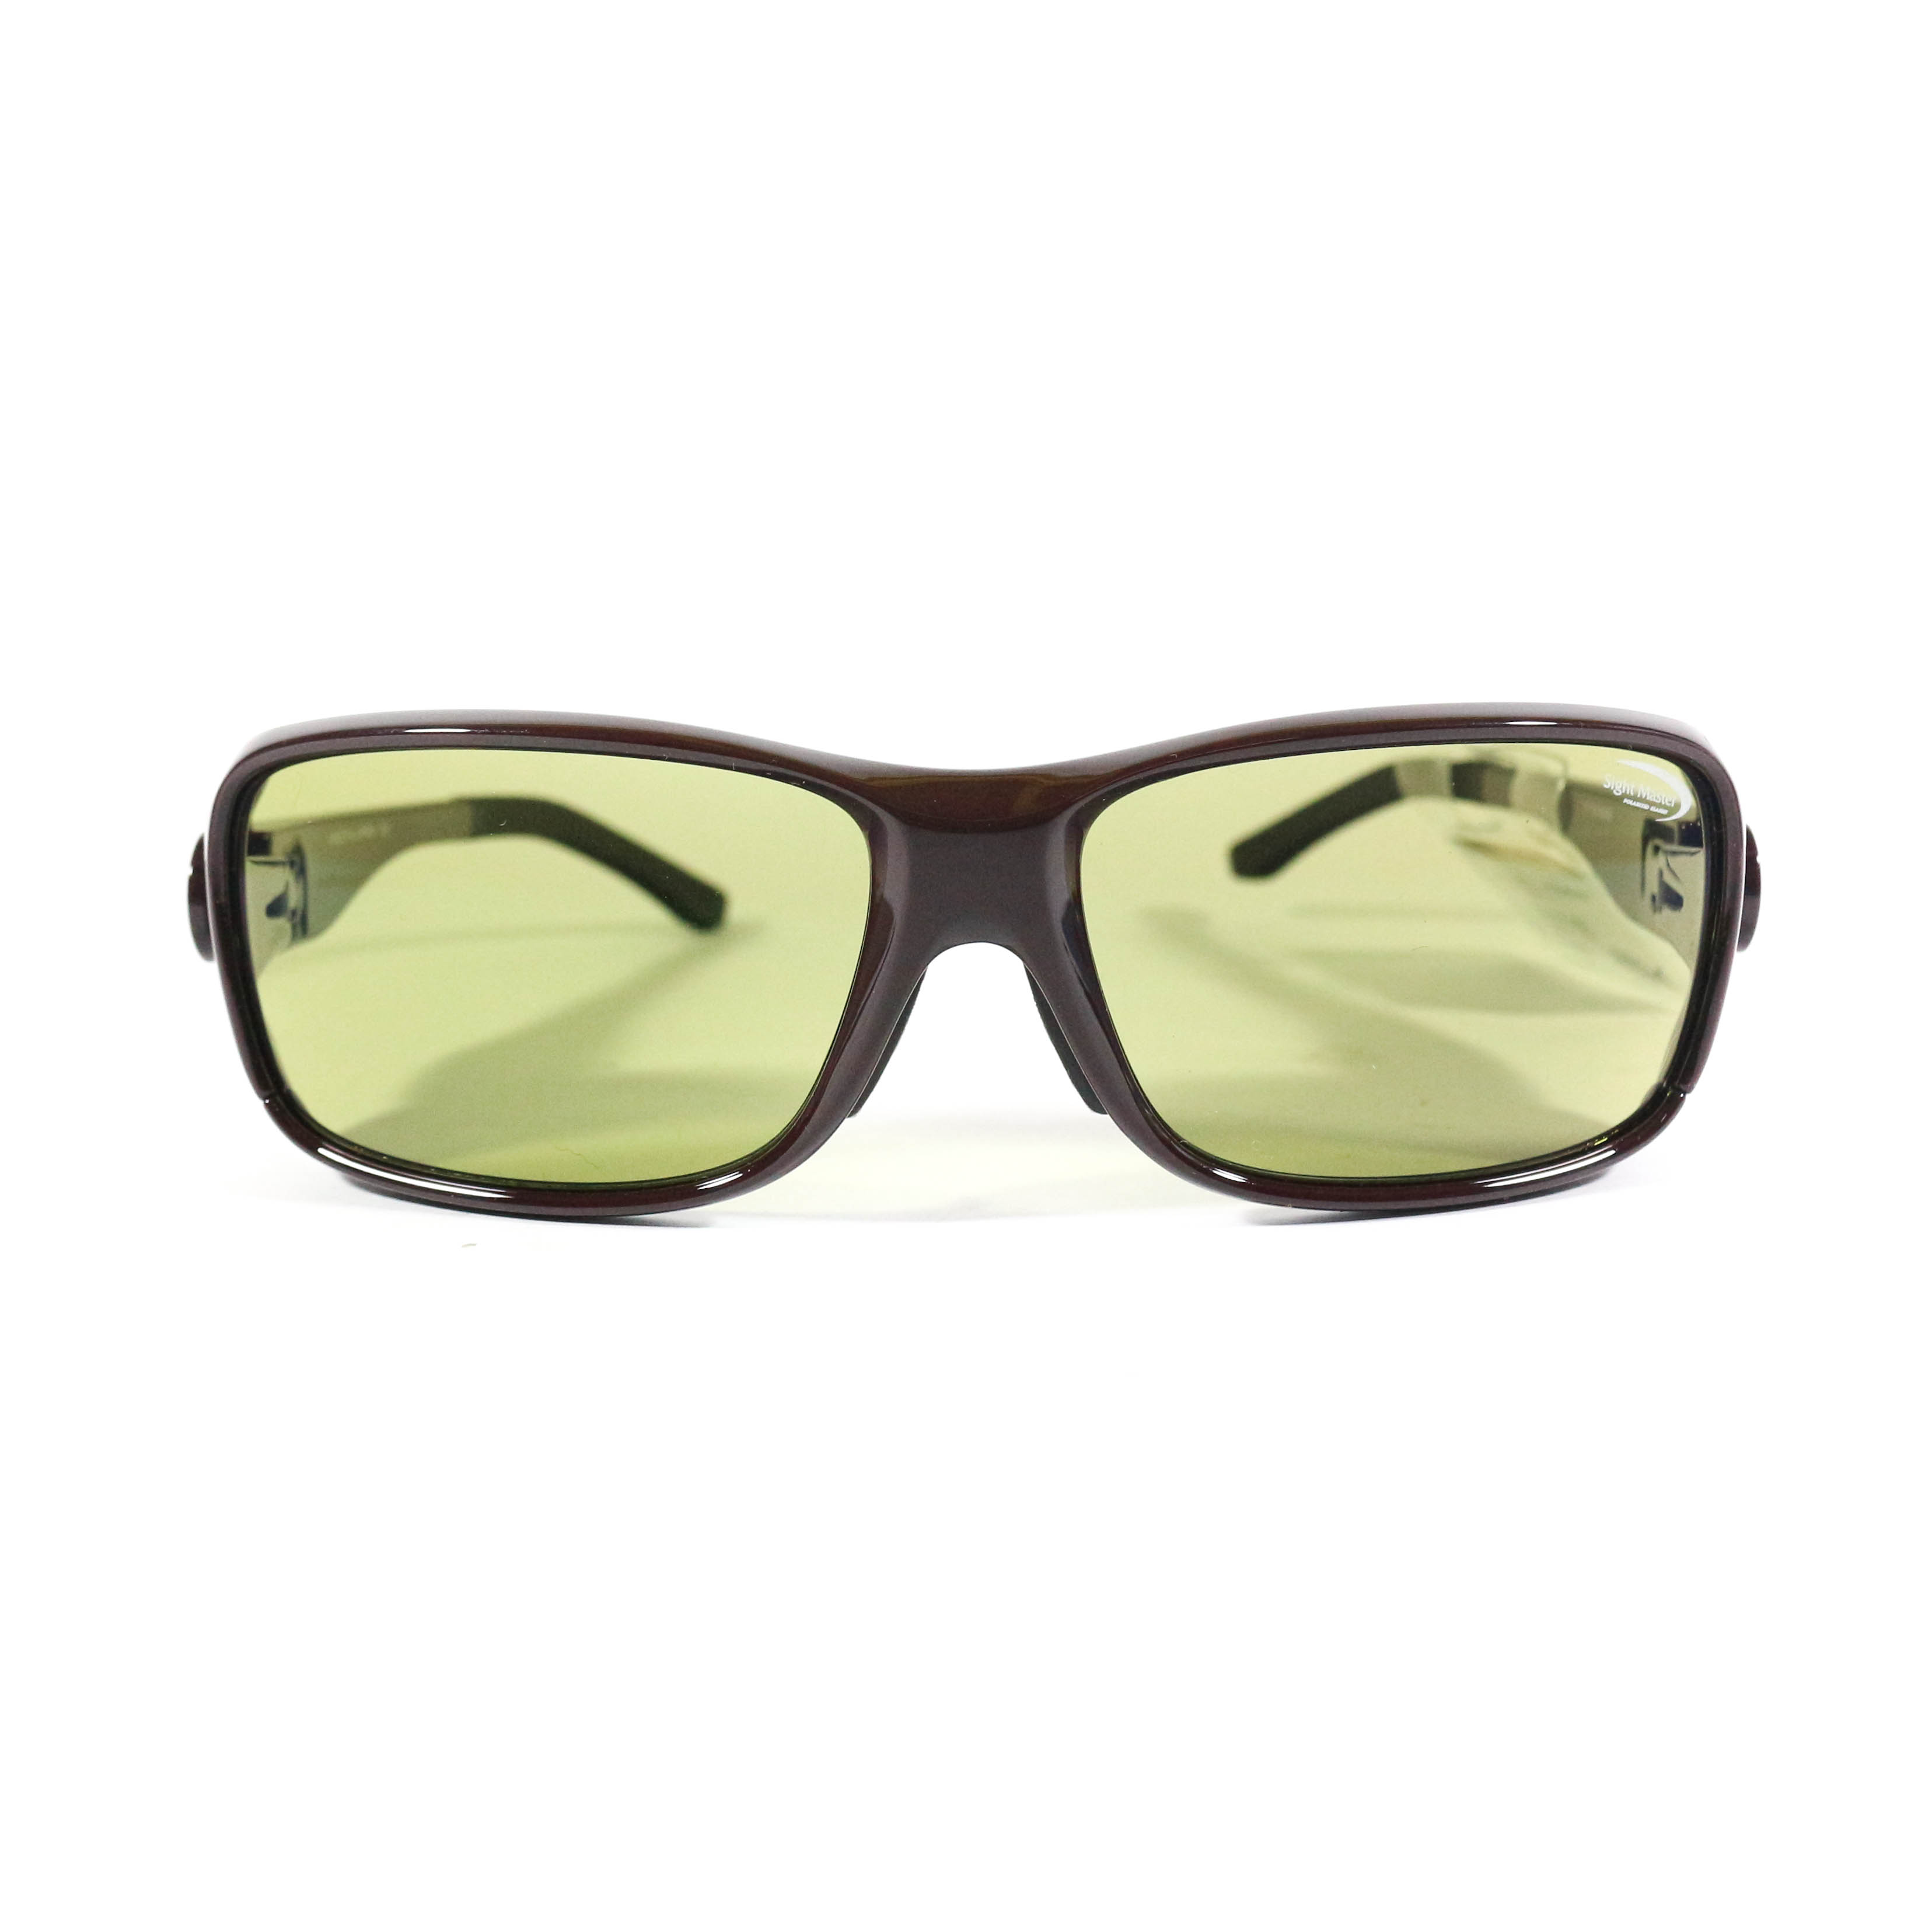 Tiemco Sight Master Sunglasses Canopy Mahogany Ease Green (8001)